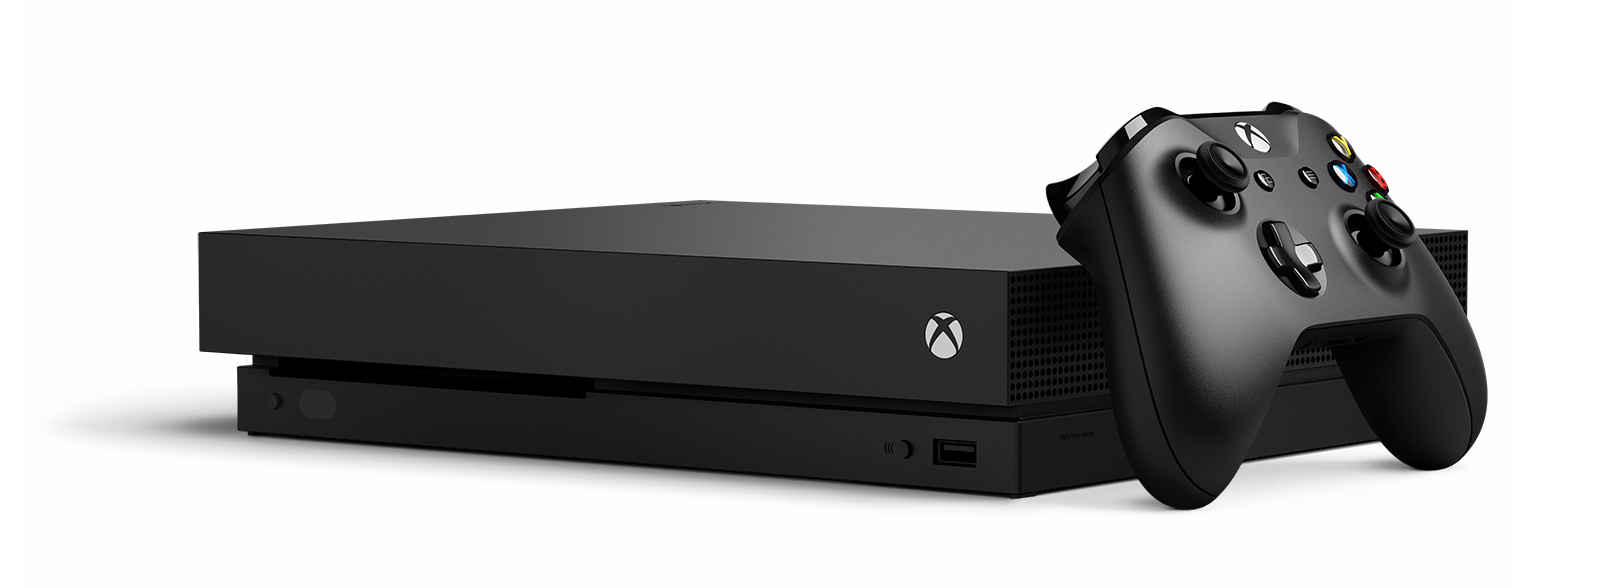 Xbox One X z kontrolerem